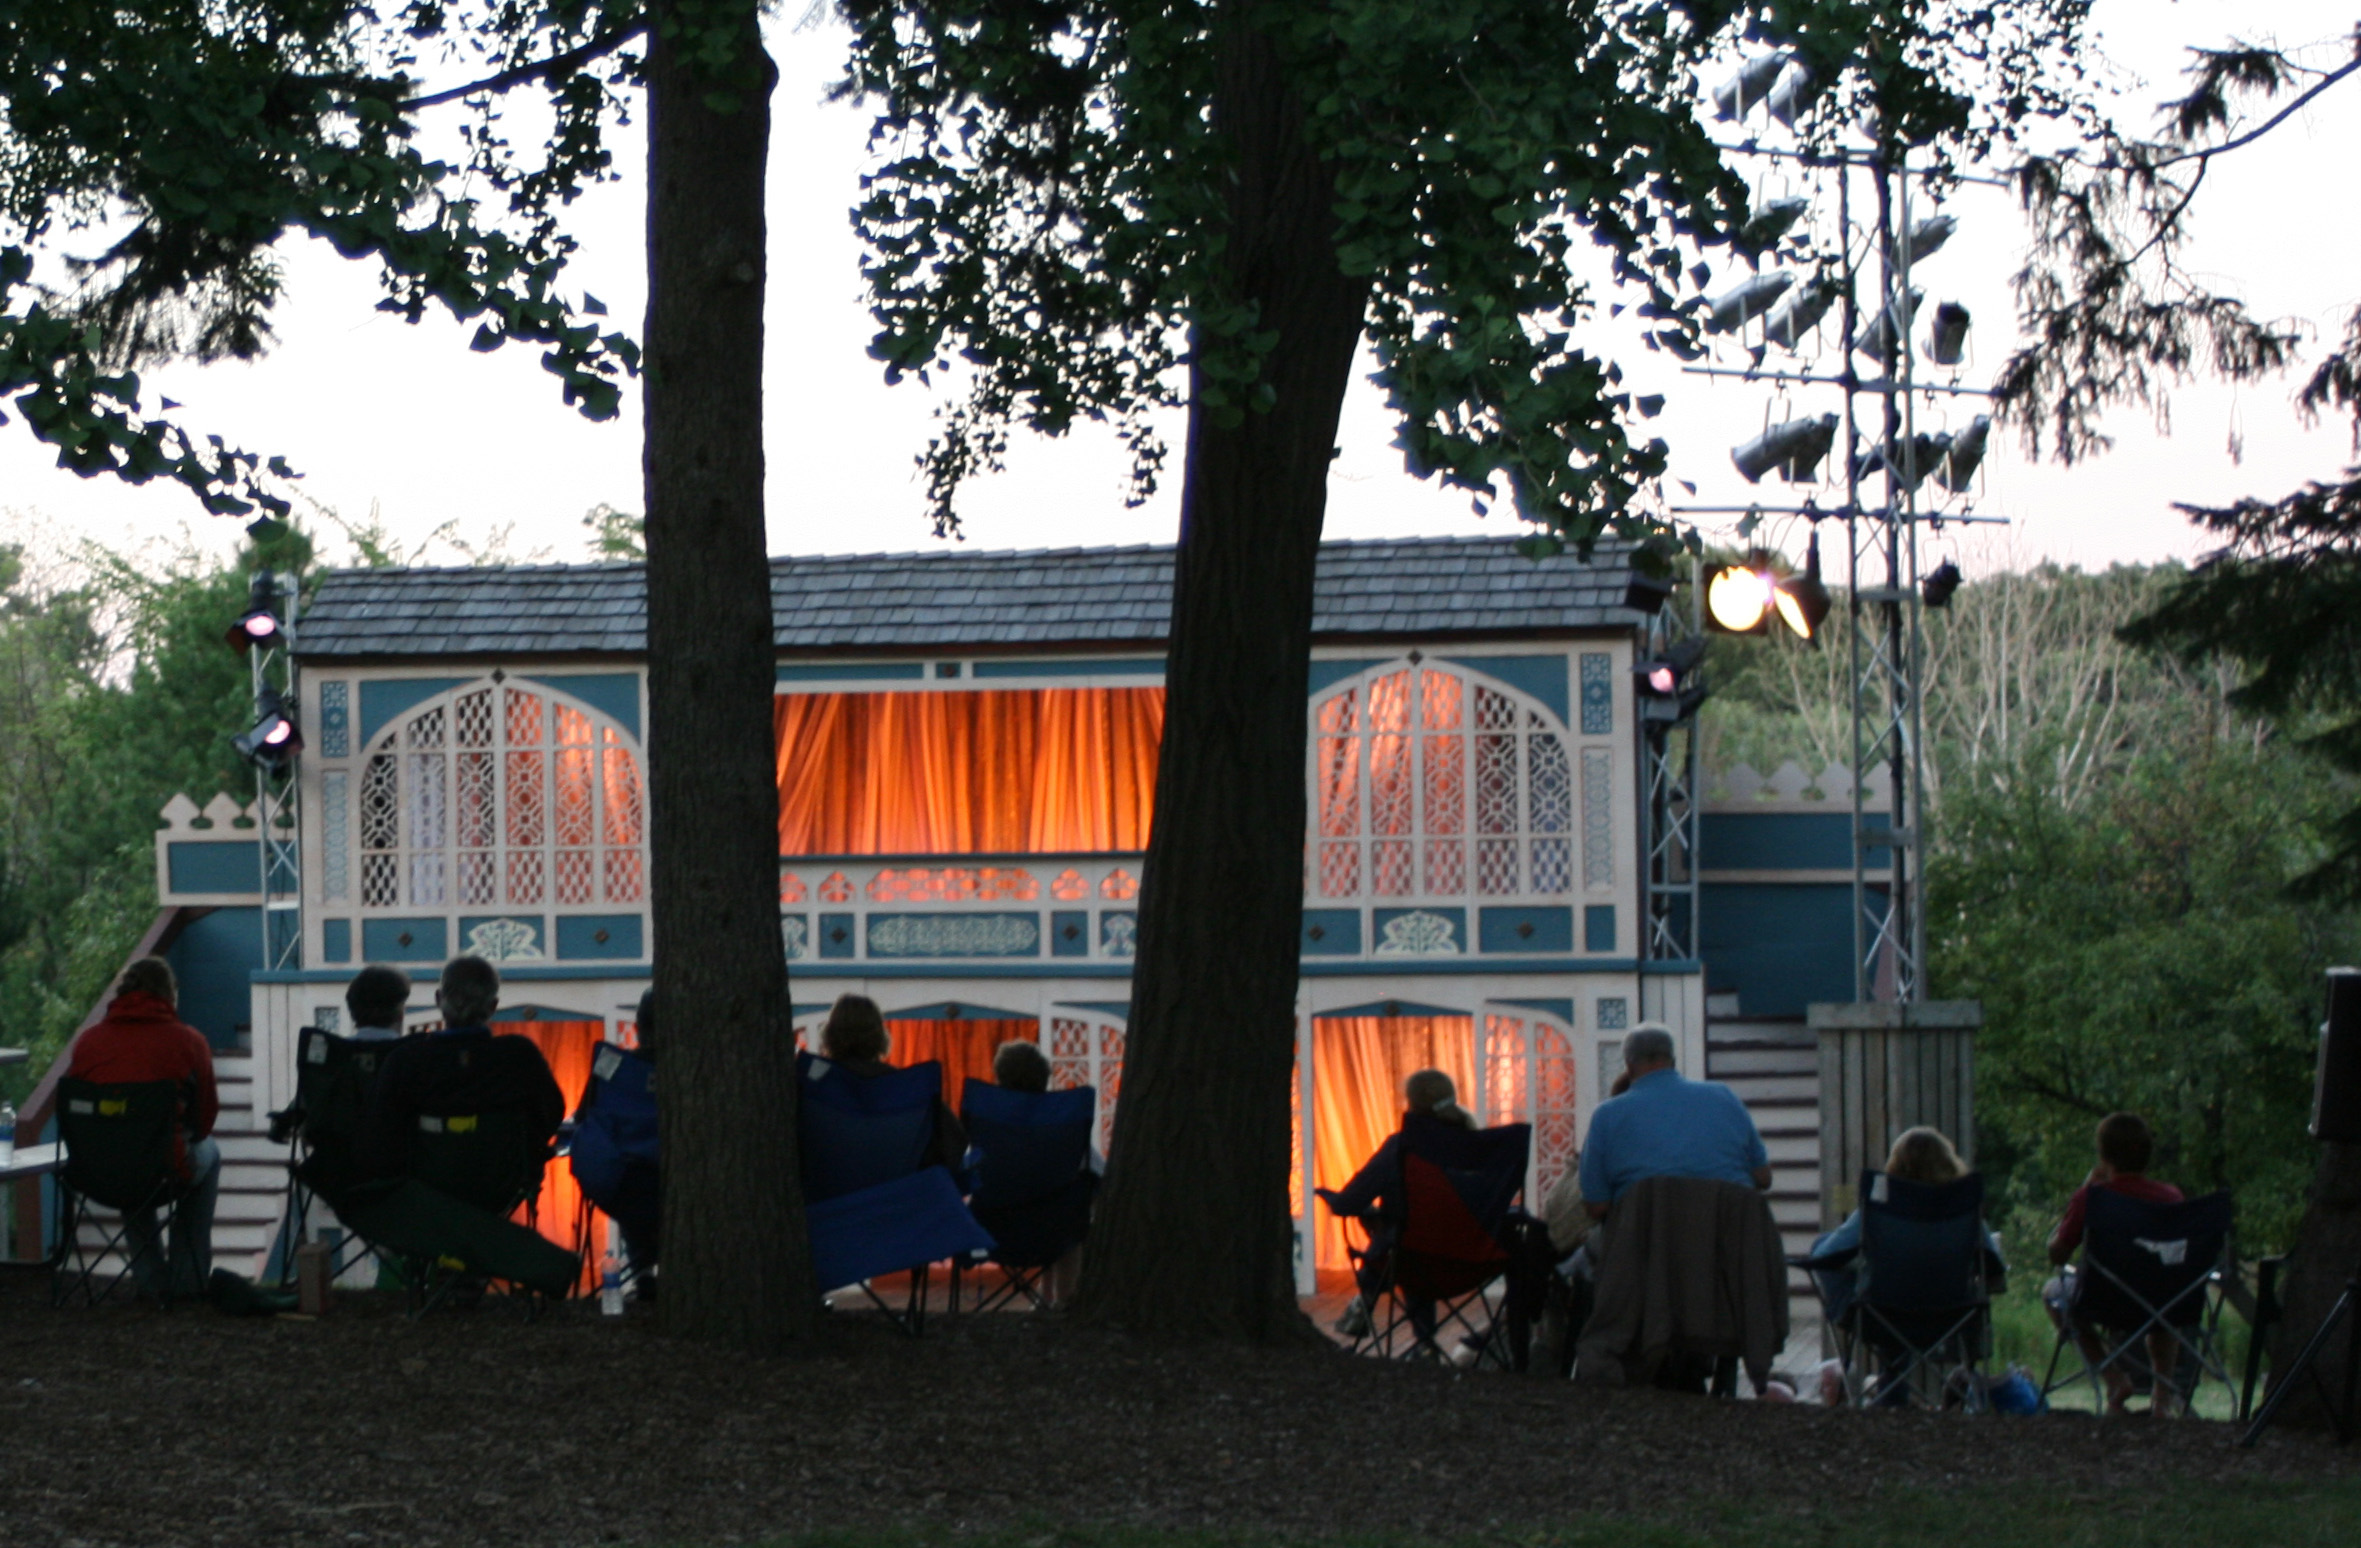 A hilltop view of First Folio's Outdoor Stage during their production of Twelfth Night, 2010.